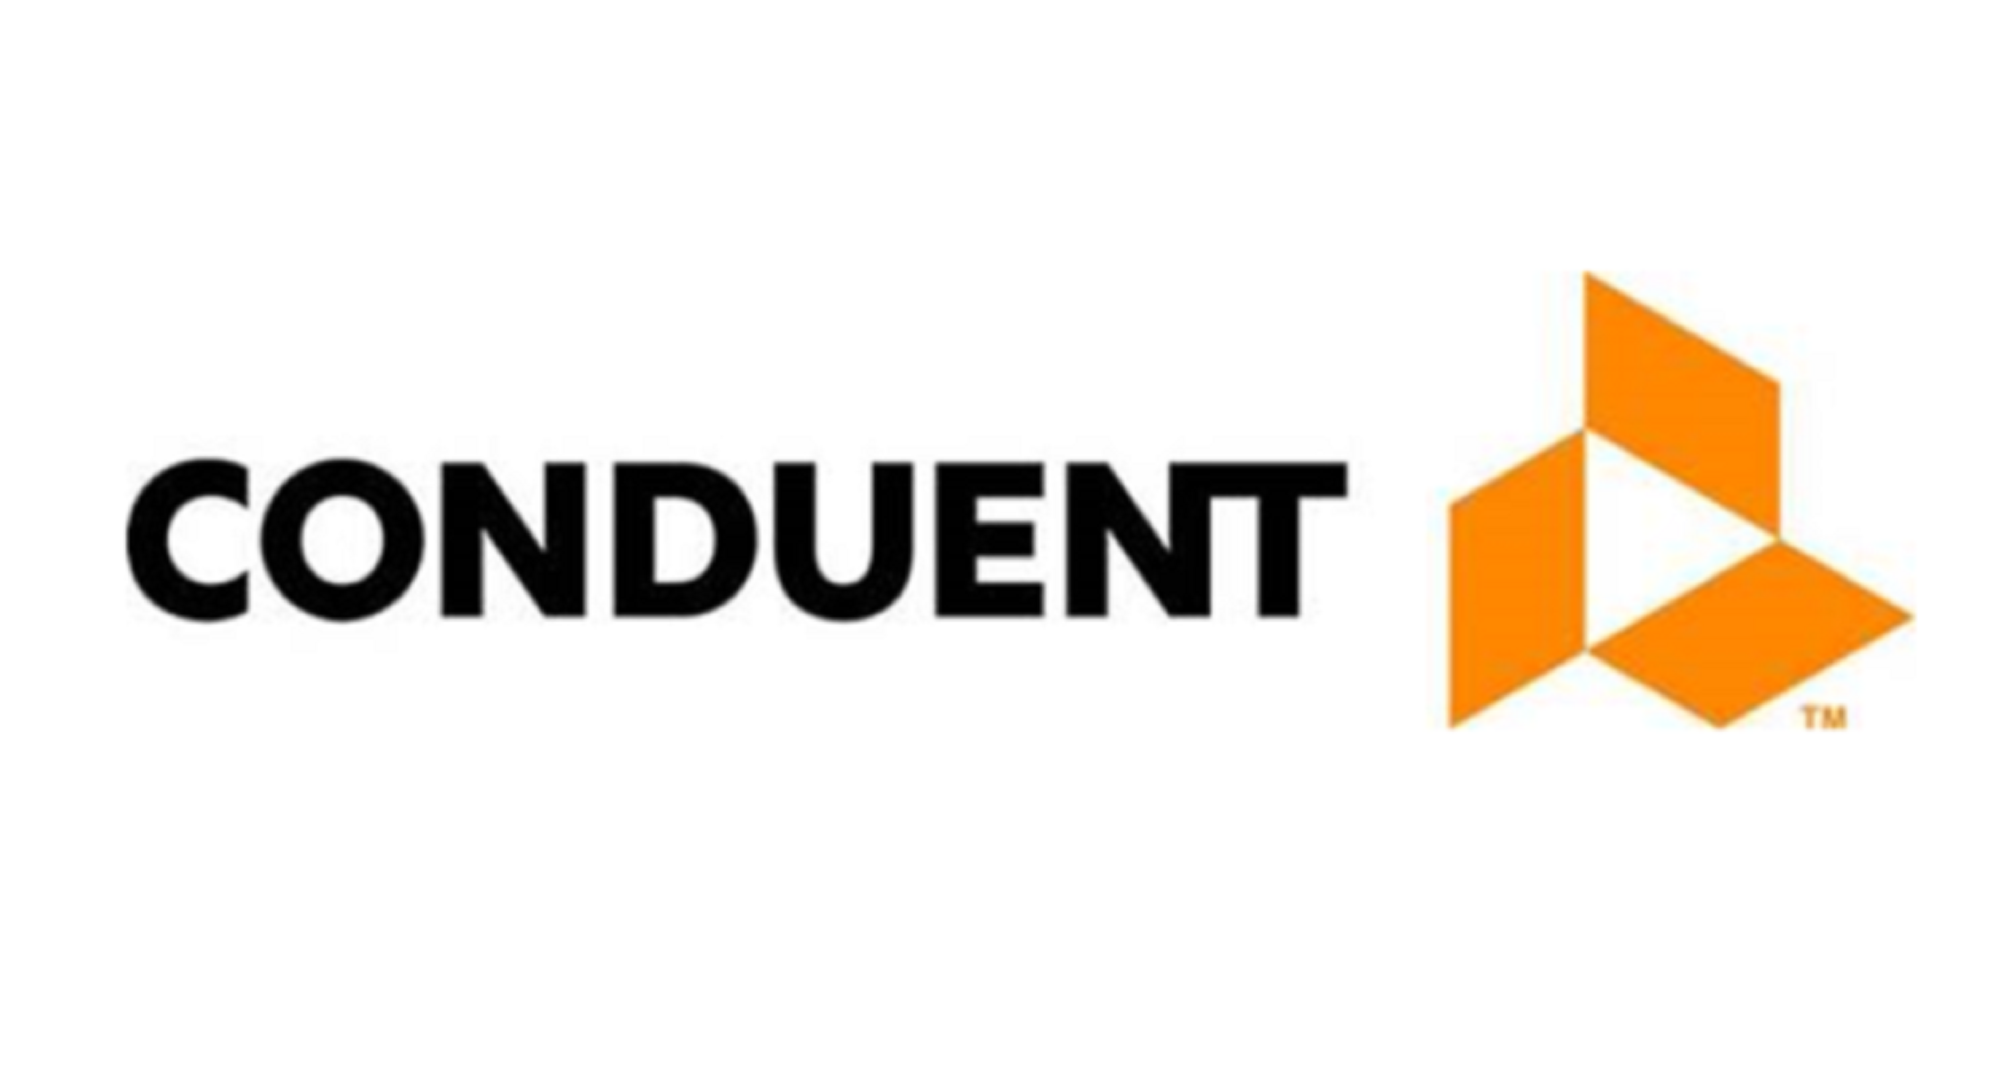 Conduent Work from Home Jobs Conduent Work at Home Jobs